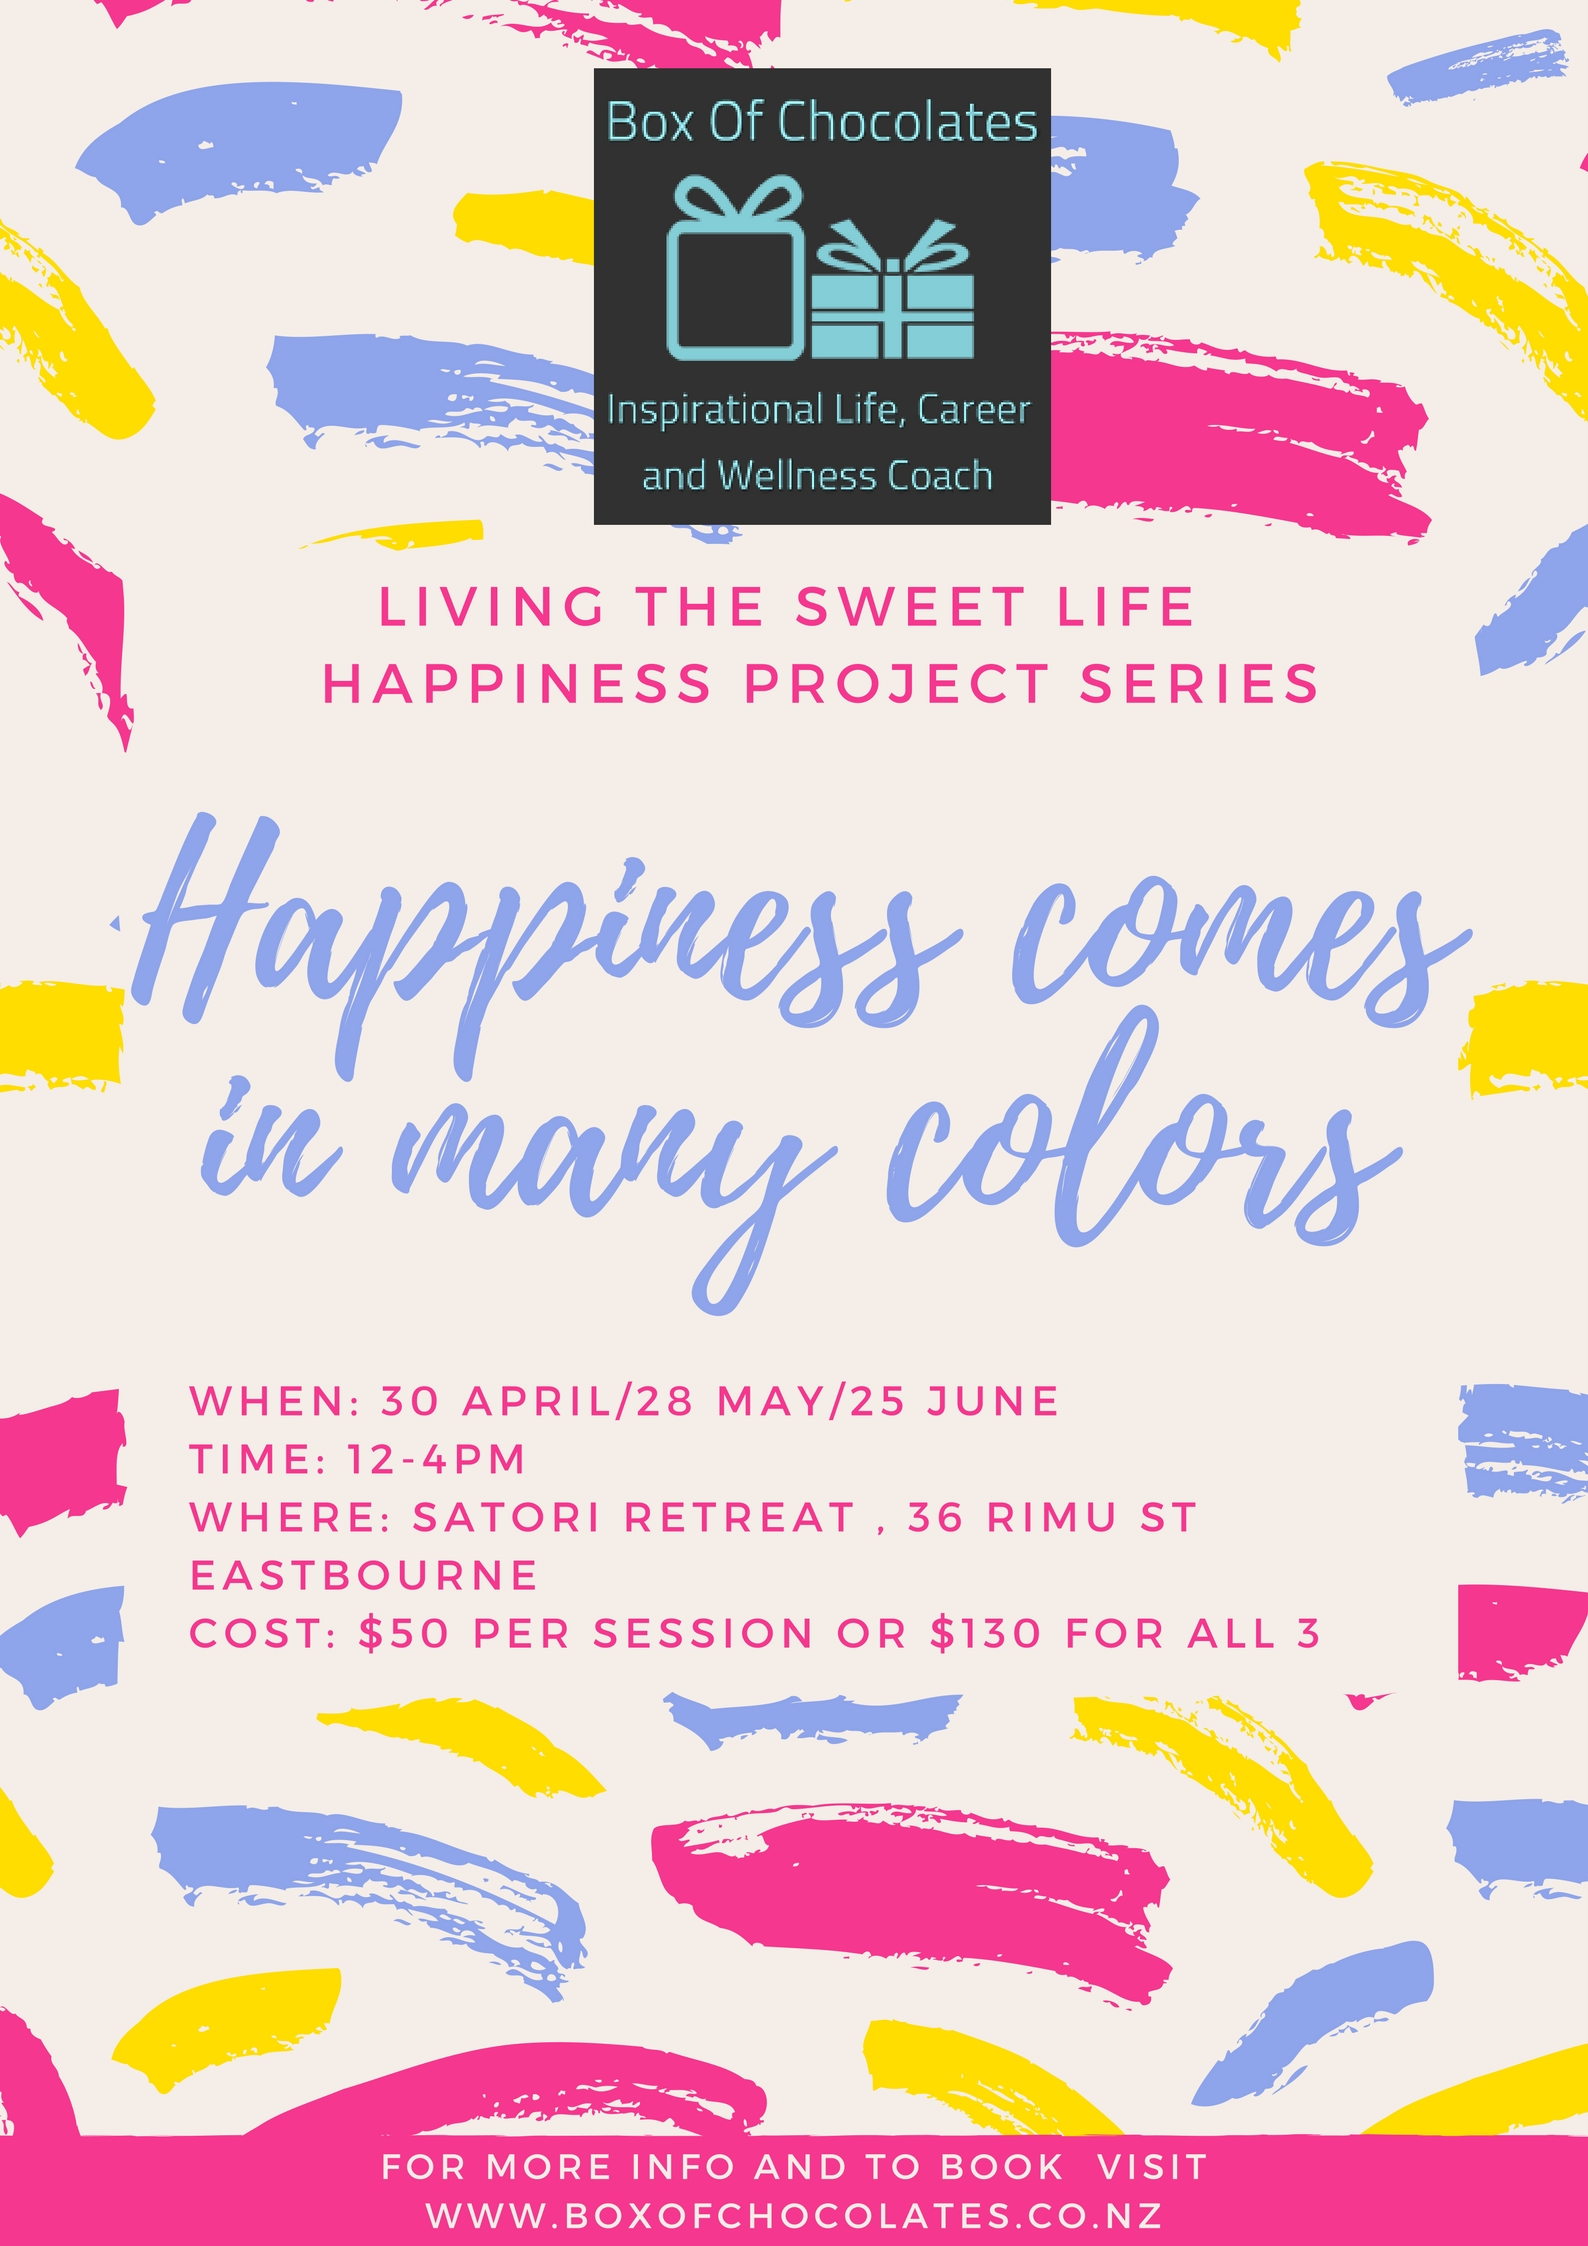 Living the Sweet Life - Happiness Project Series